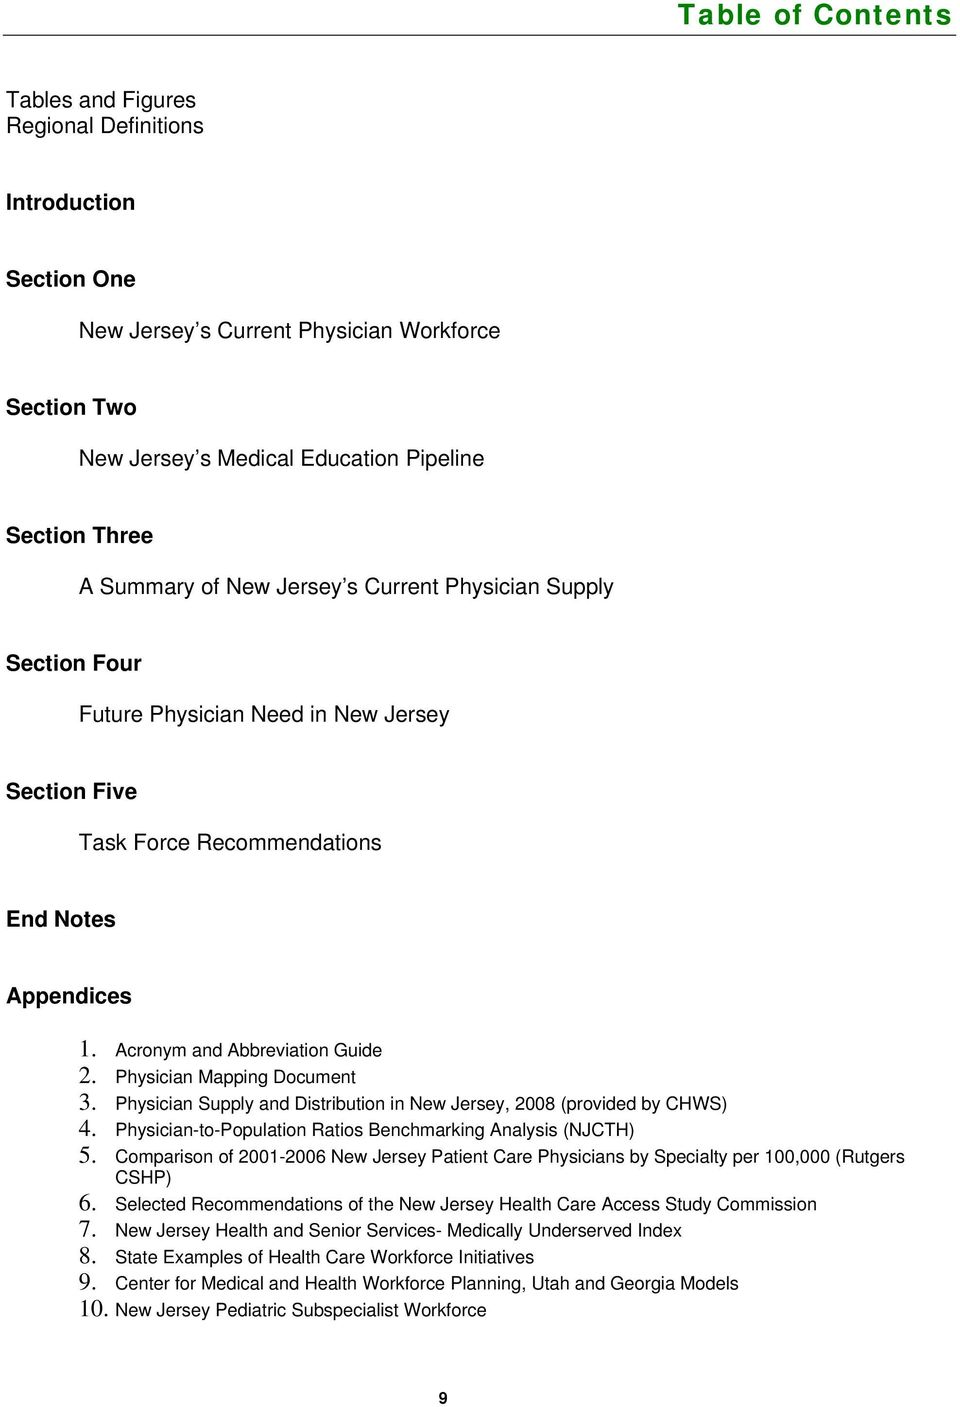 Physician Mapping Document 3. Physician Supply and Distribution in New Jersey, 2008 (provided by CHWS) 4. Physician-to-Population Ratios Benchmarking Analysis (NJCTH) 5.